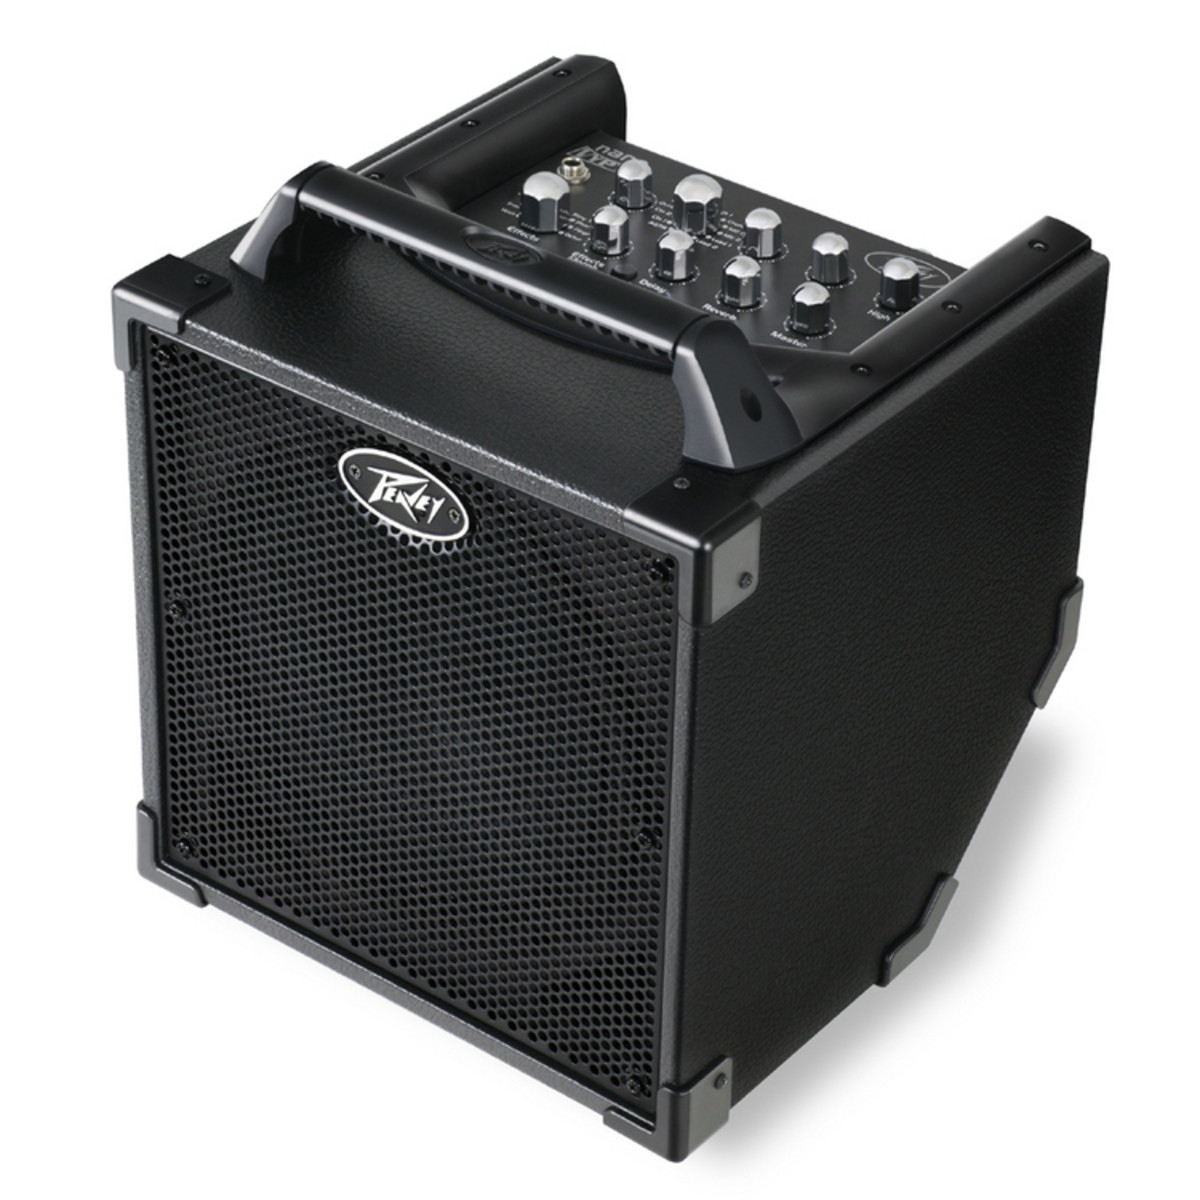 Bass Guitar Portable Amp : peavey nano vypyr portable guitar amp nearly new at ~ Hamham.info Haus und Dekorationen